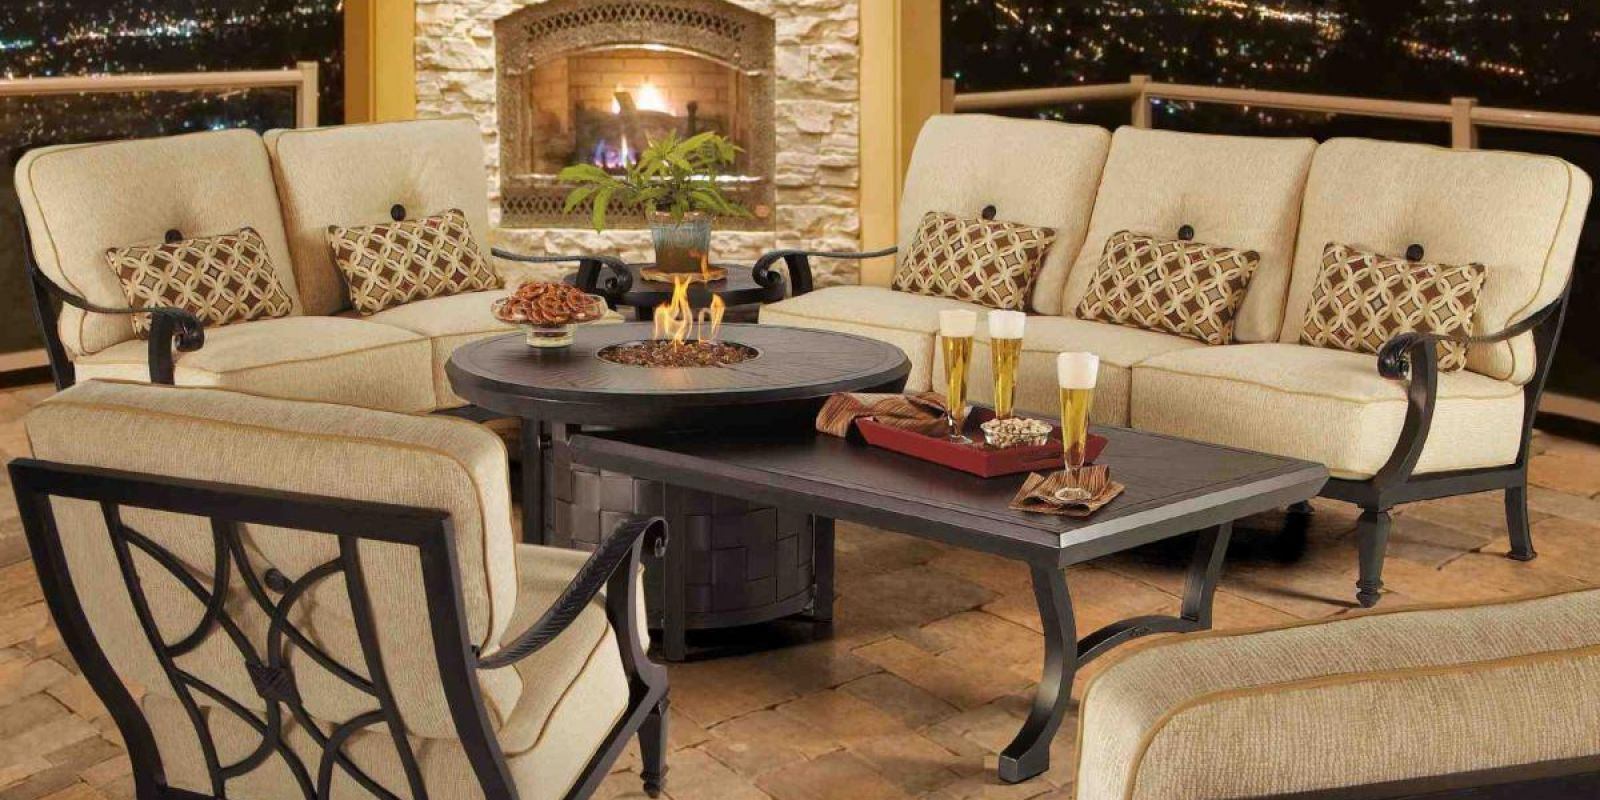 Outdoor Patio Design Specialist | American Casual Living on Porch & Patio Casual Living id=86782